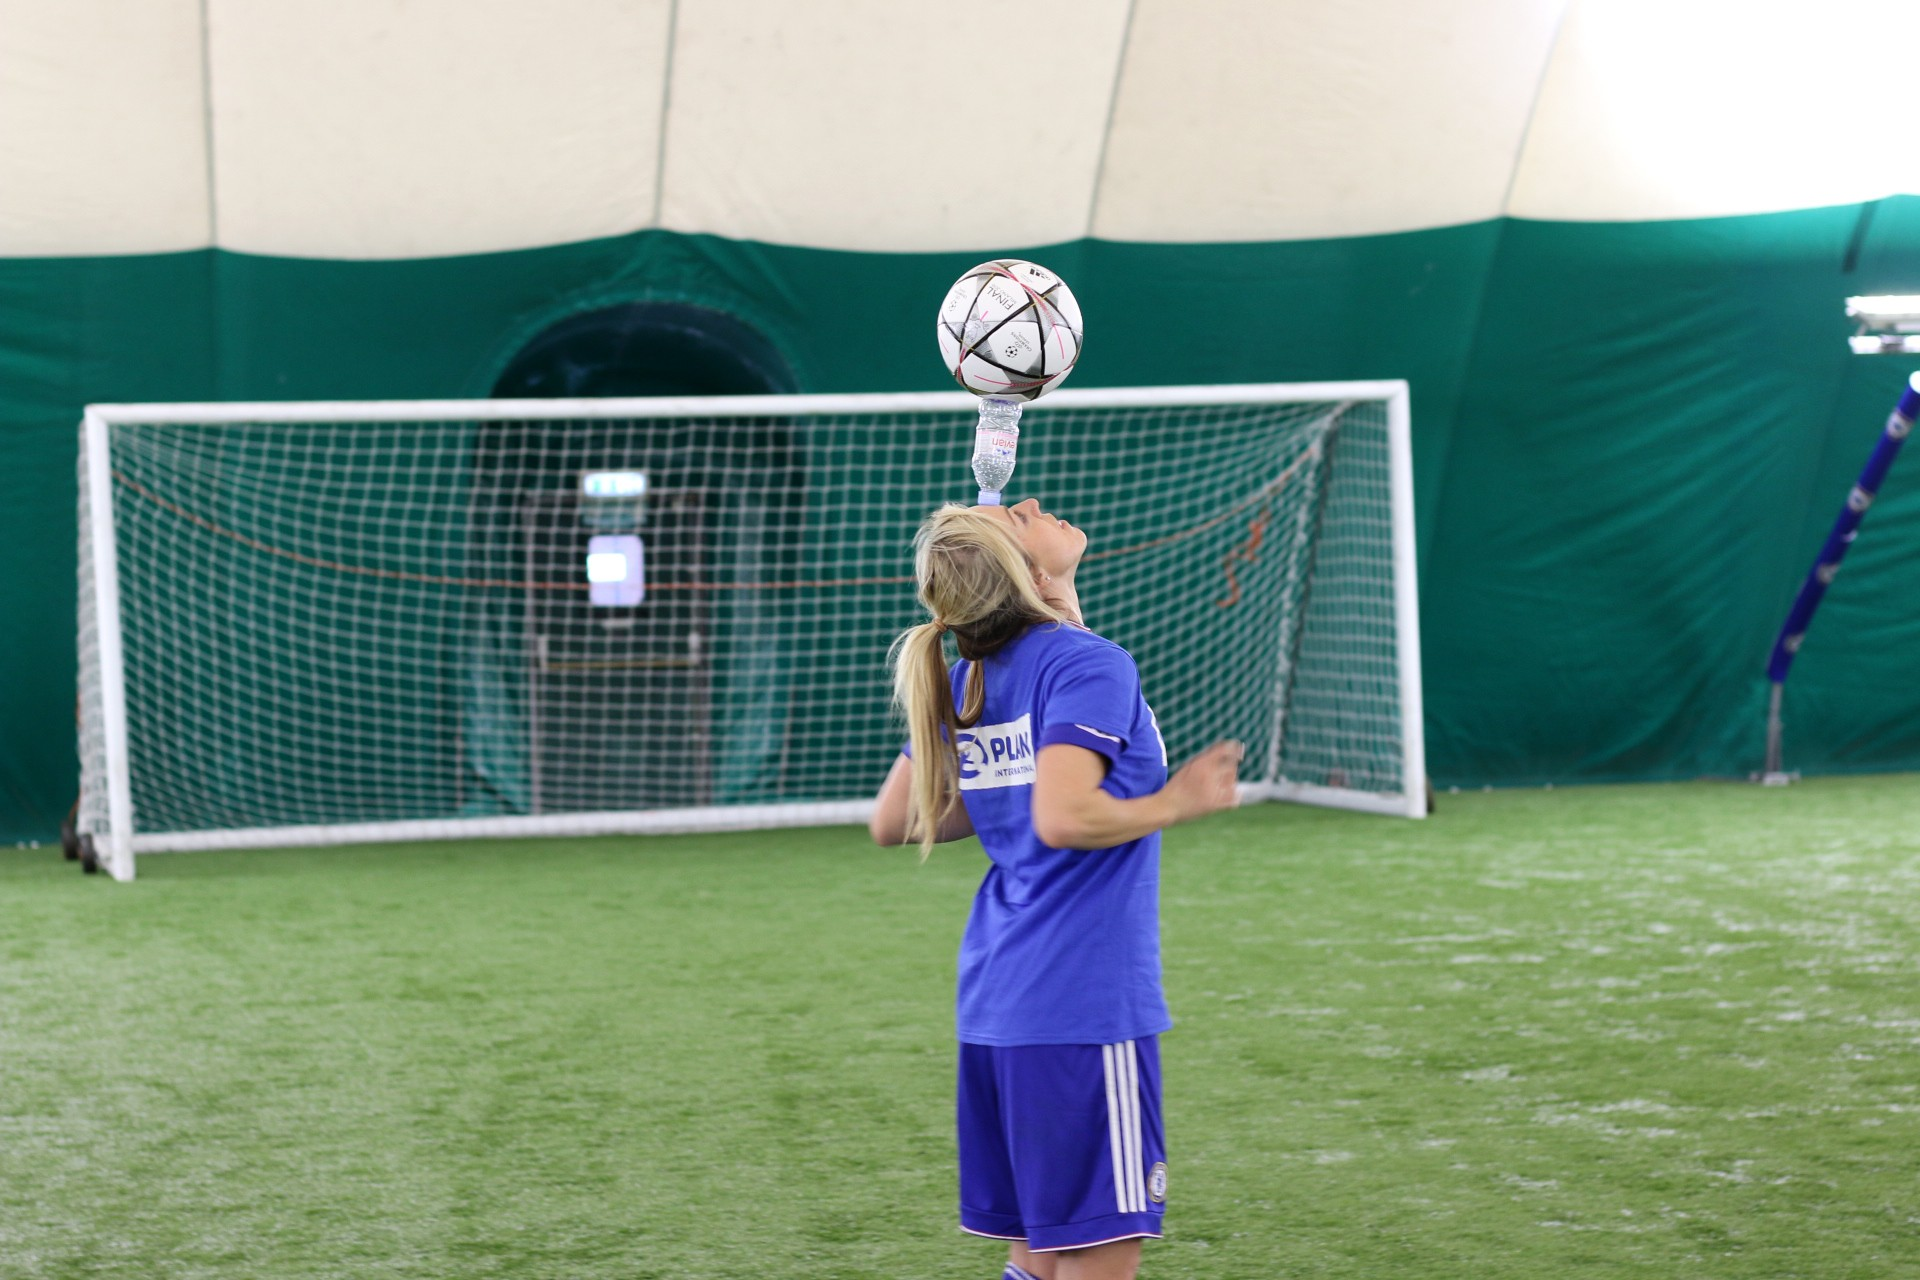 Gemma from Chelsea Ladies Team shows off her football skills